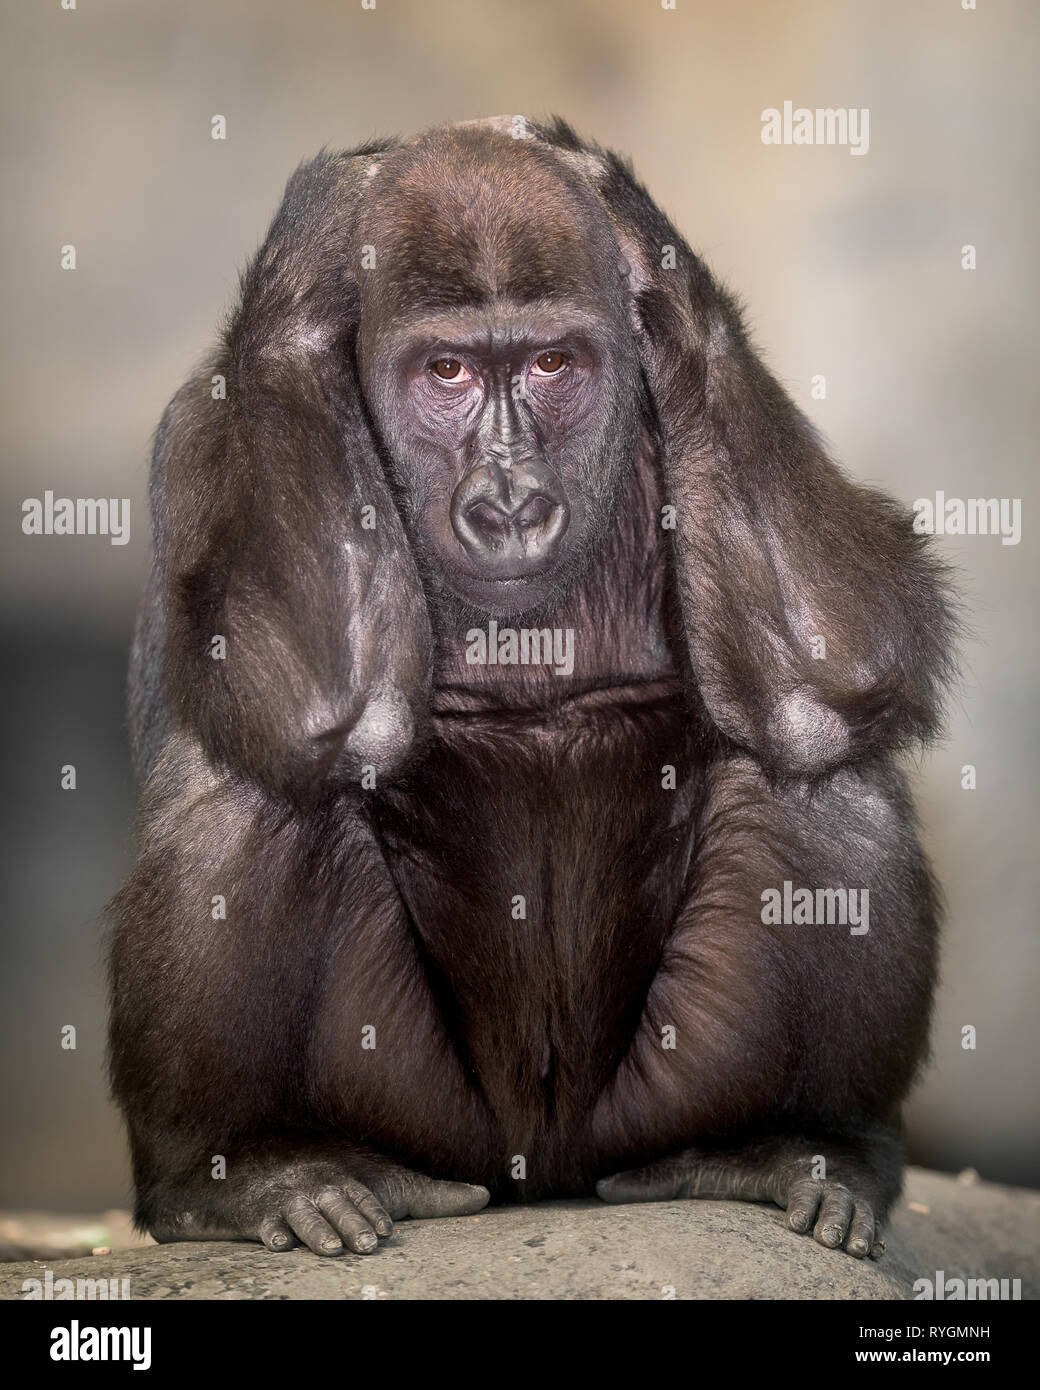 Adult female western lowland gorilla portrait with hands covering ears - Stock Image